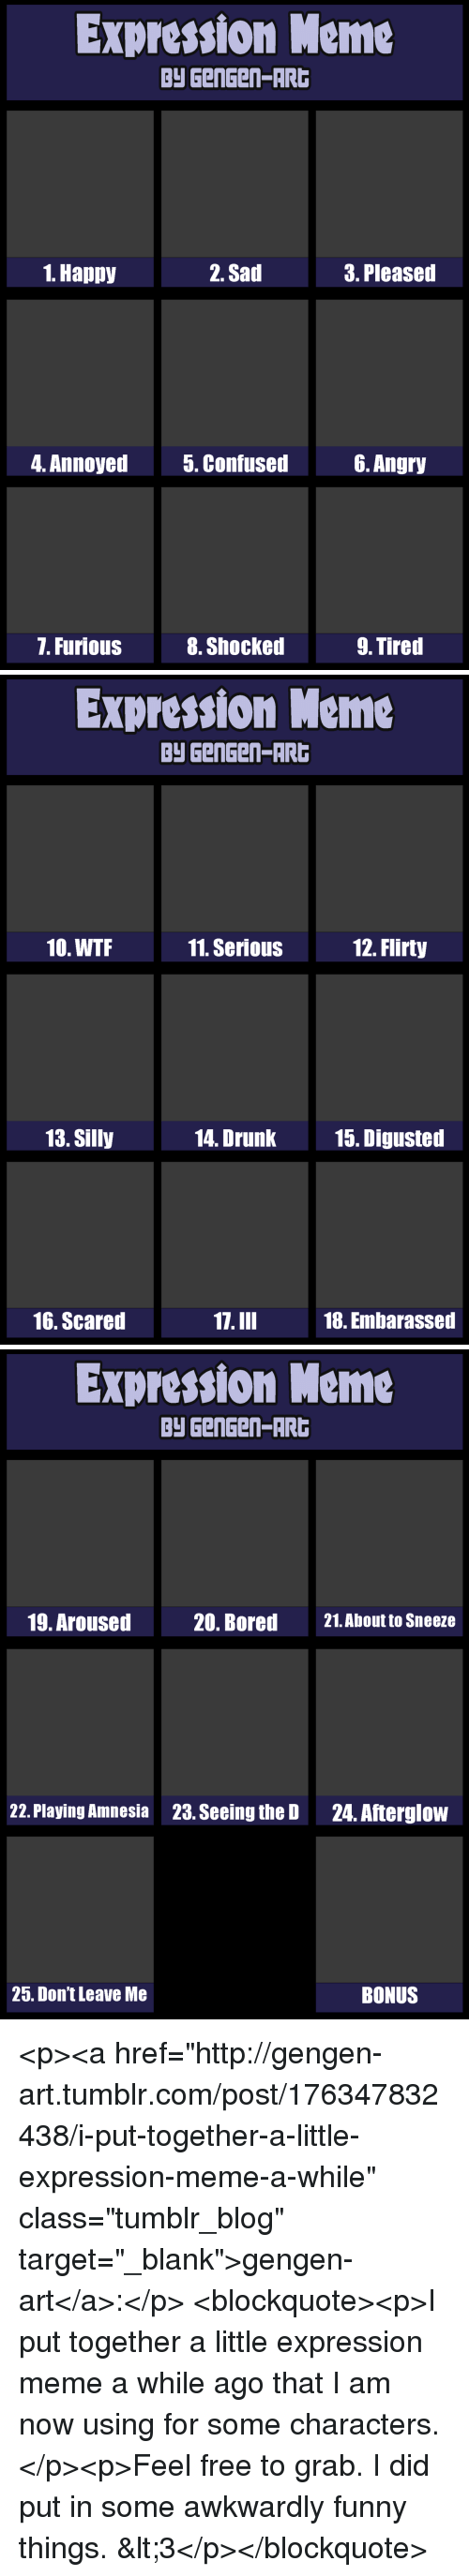 "Bored, Drunk, and Funny: Expression Meme  Py GenGen-AR  1. Happy  2. Sad  3. Pleased  4. Annoyed  5. Confused6. Angry  7. Furious  8. Shocked  9. Tired   Expression Meme  Py GenGen-AR  10. WTF  11. SeriouS  12. Flirty  13. Silly  14. Drunk  15. Digusted  16. Scared  17.III  18. Embarassed   Expression Meme  Py GenGen-AR  19. Aroused  20. Bored  21.About to Sneeze  22. Playing Amnesia  23. Seeing the D  24. Afterglow  25. Don't Leave Me  BONUS <p><a href=""http://gengen-art.tumblr.com/post/176347832438/i-put-together-a-little-expression-meme-a-while"" class=""tumblr_blog"" target=""_blank"">gengen-art</a>:</p>  <blockquote><p>I put together a little expression meme a while ago that I am now using for some characters.</p><p>Feel free to grab. I did put in some awkwardly funny things. <3</p></blockquote>"